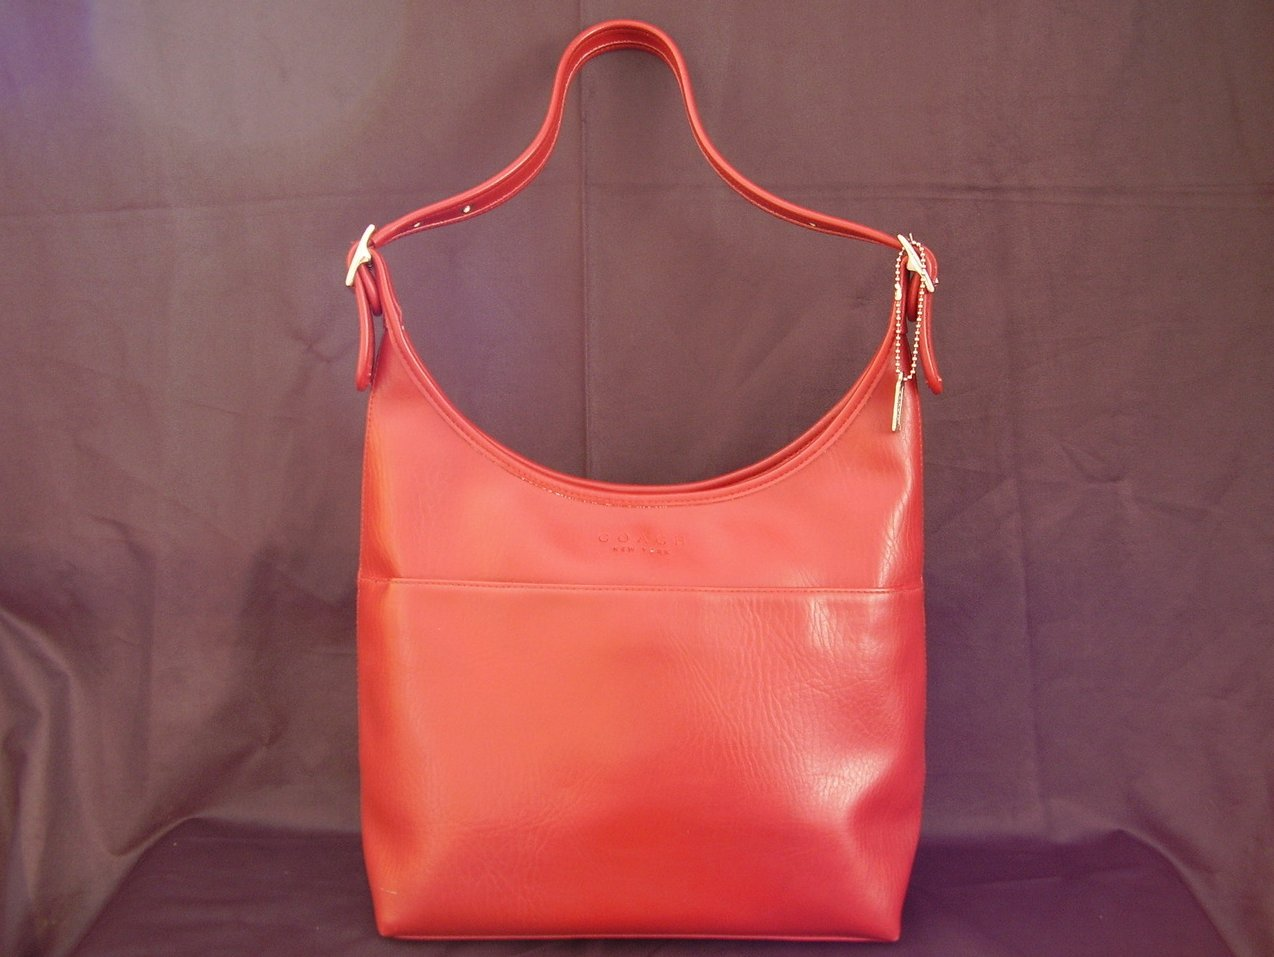 Small Bucket Zip Purse Handbag Tomato Red